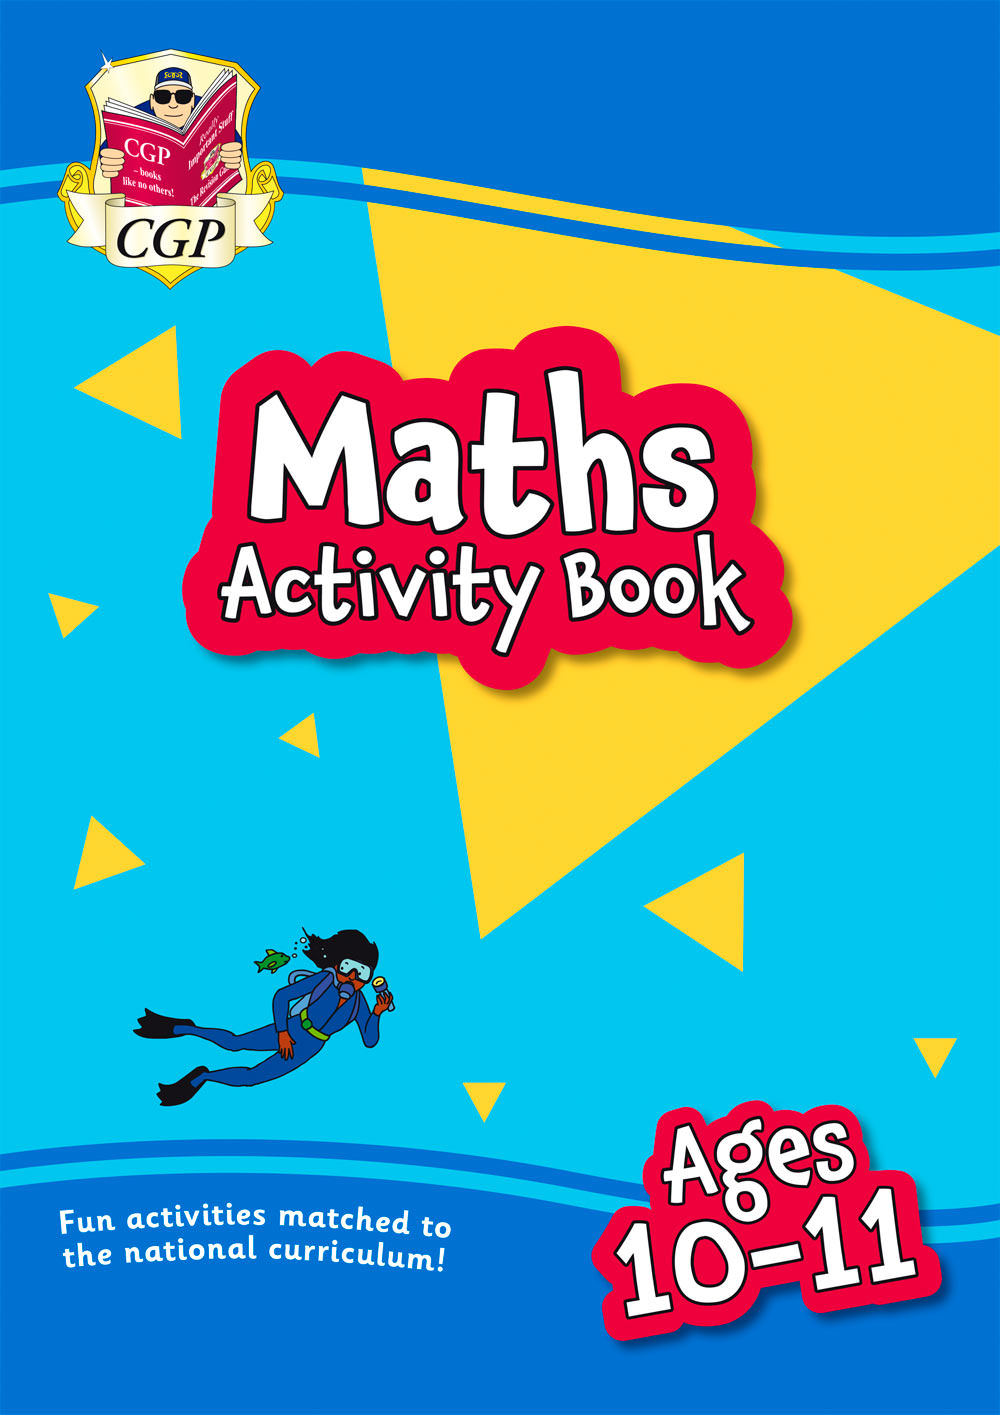 MPF6Q21 - New Maths Activity Book for Ages 10-11